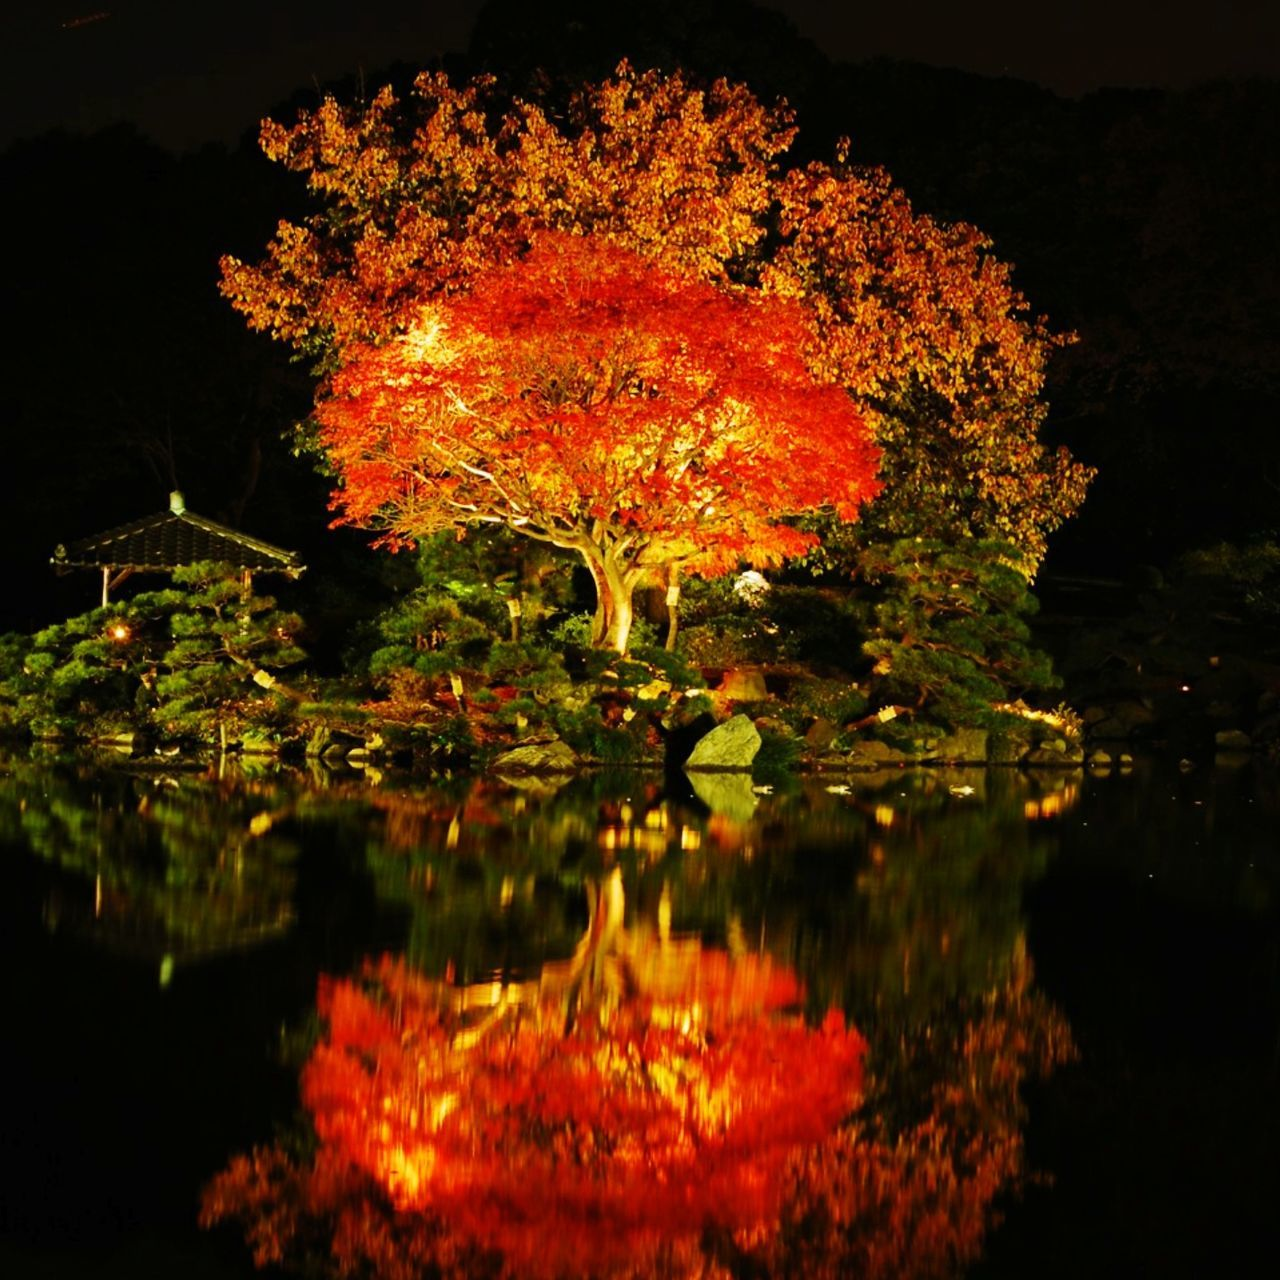 tree, night, reflection, orange color, autumn, water, waterfront, leaf, nature, illuminated, change, outdoors, no people, lake, beauty in nature, growth, sky, close-up, maple